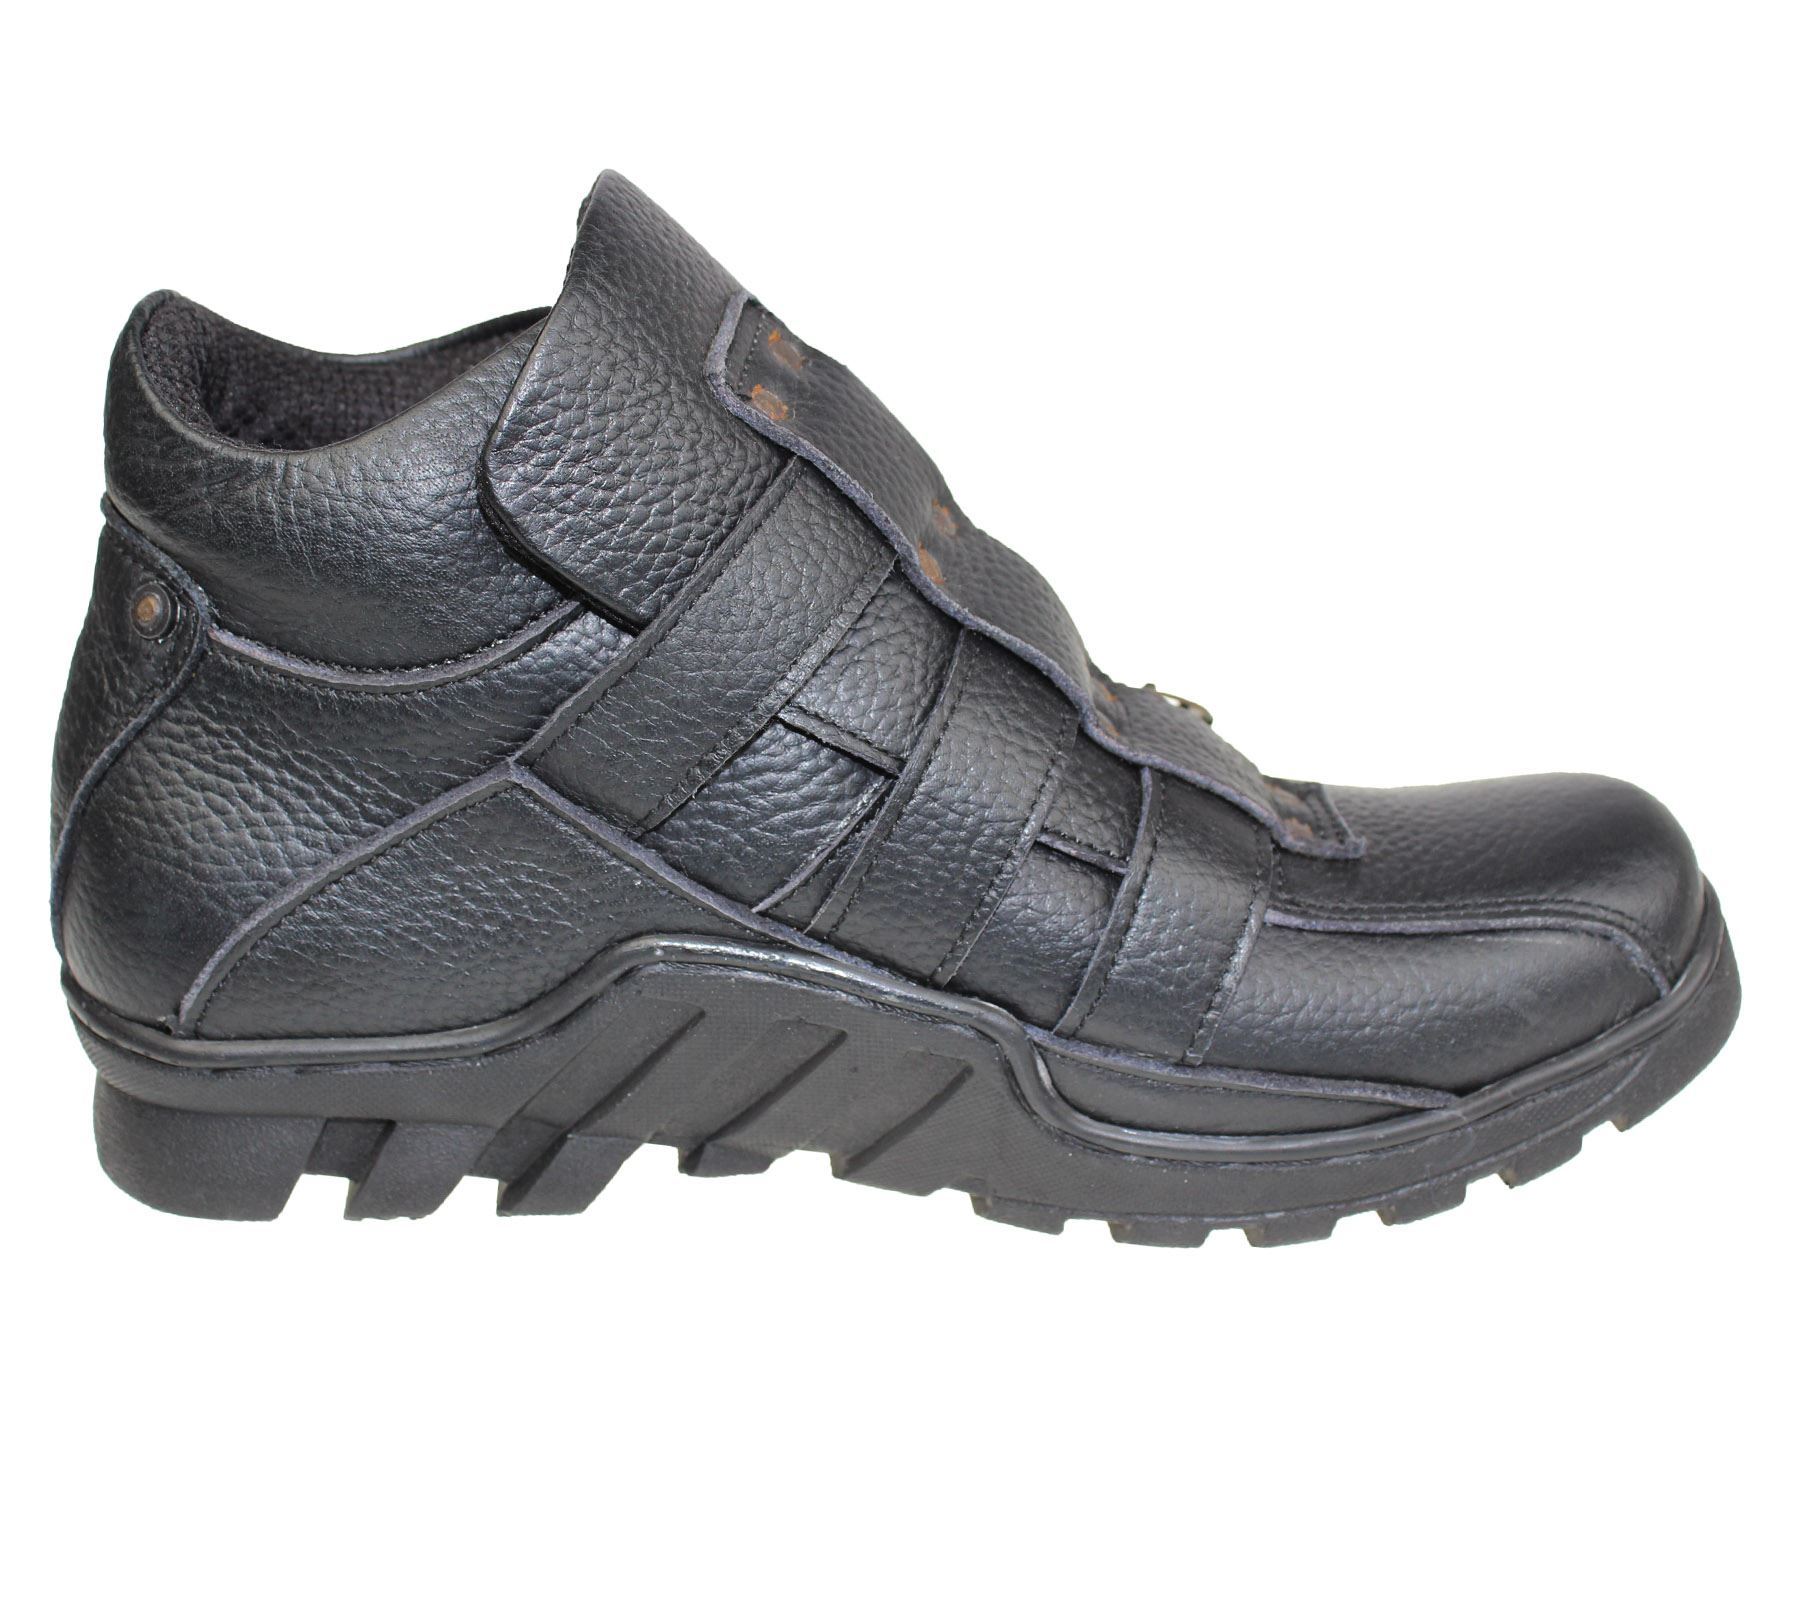 mens mild leather boots high top ankle hiking trail biker